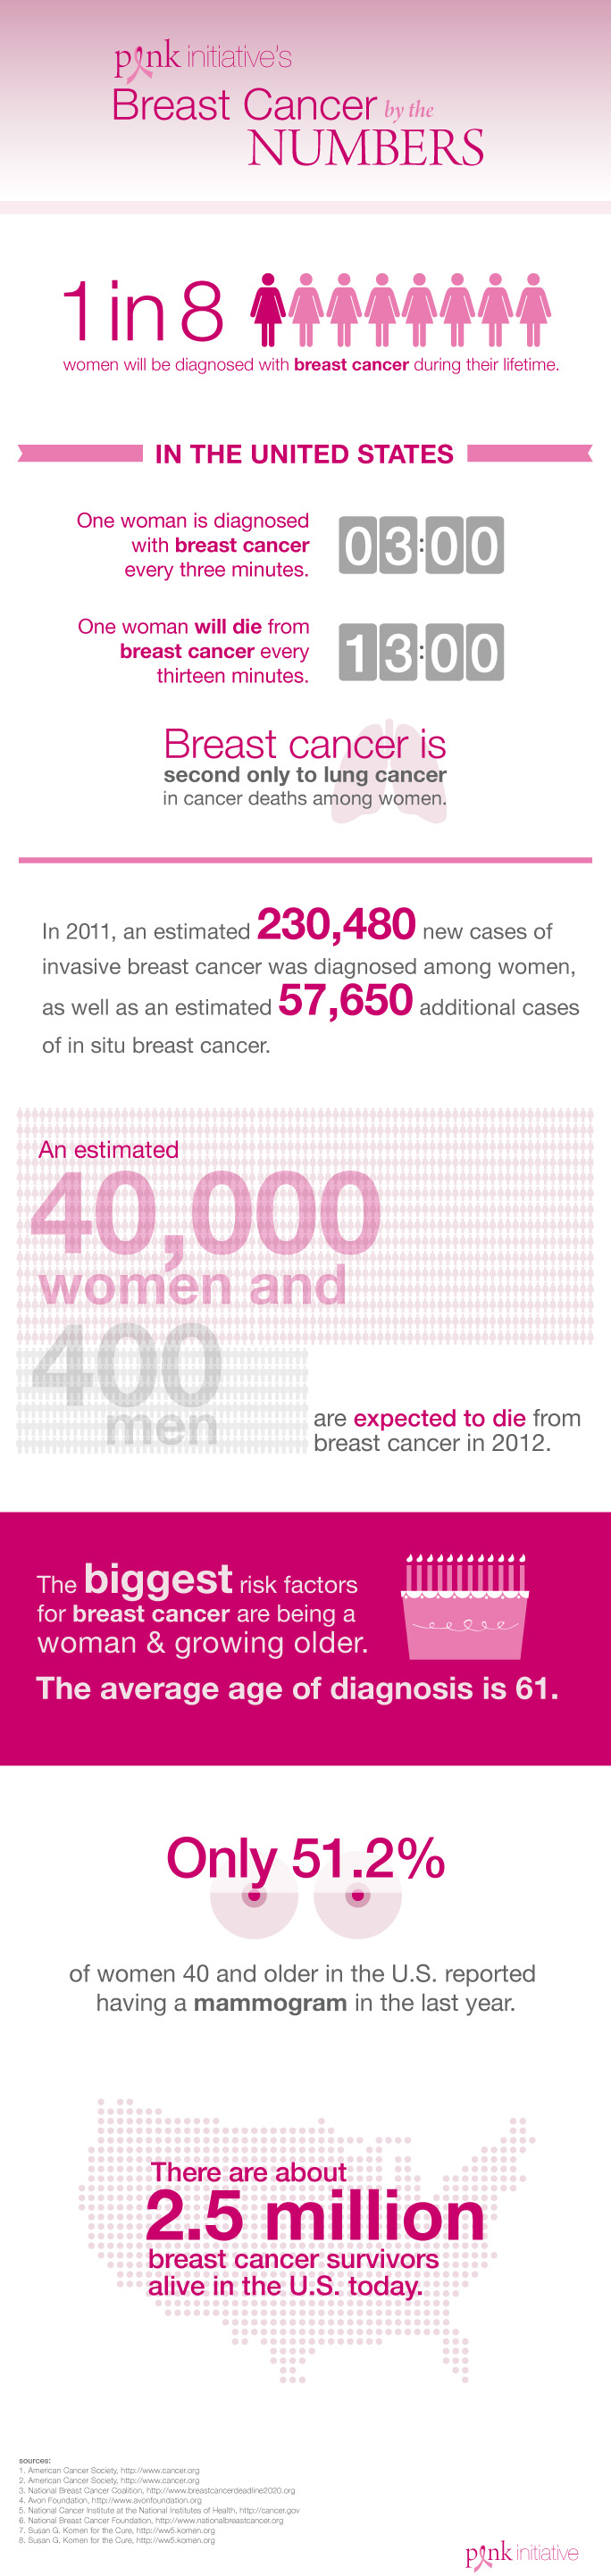 pink-initiative-breast-cancer-statistics